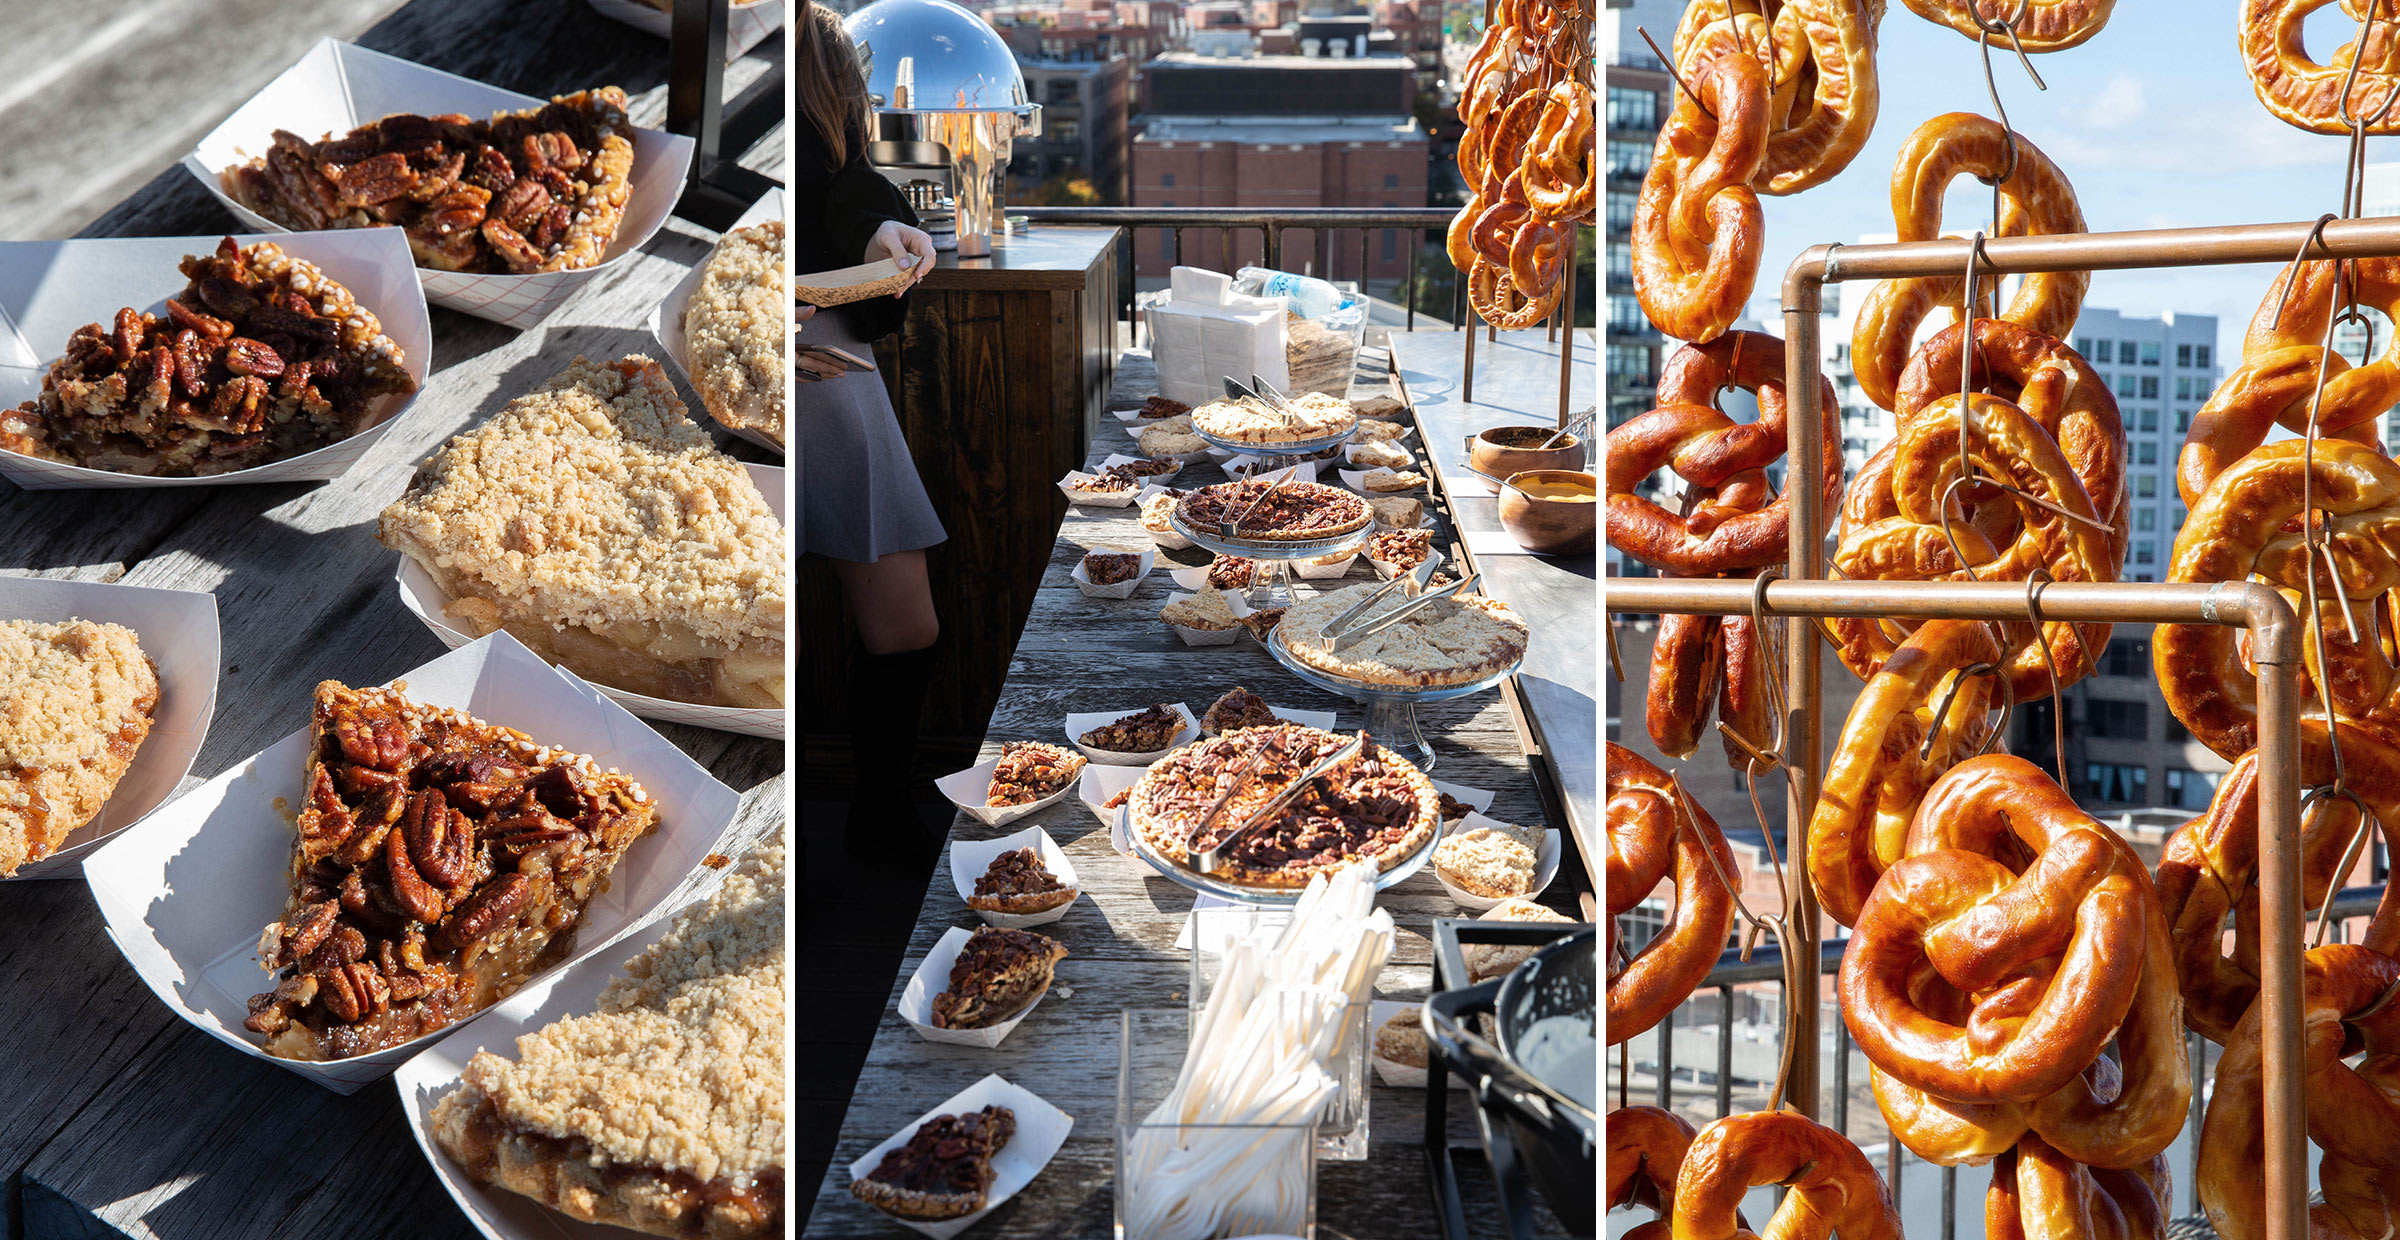 Food at the employee rooftop party at Trunk Club.